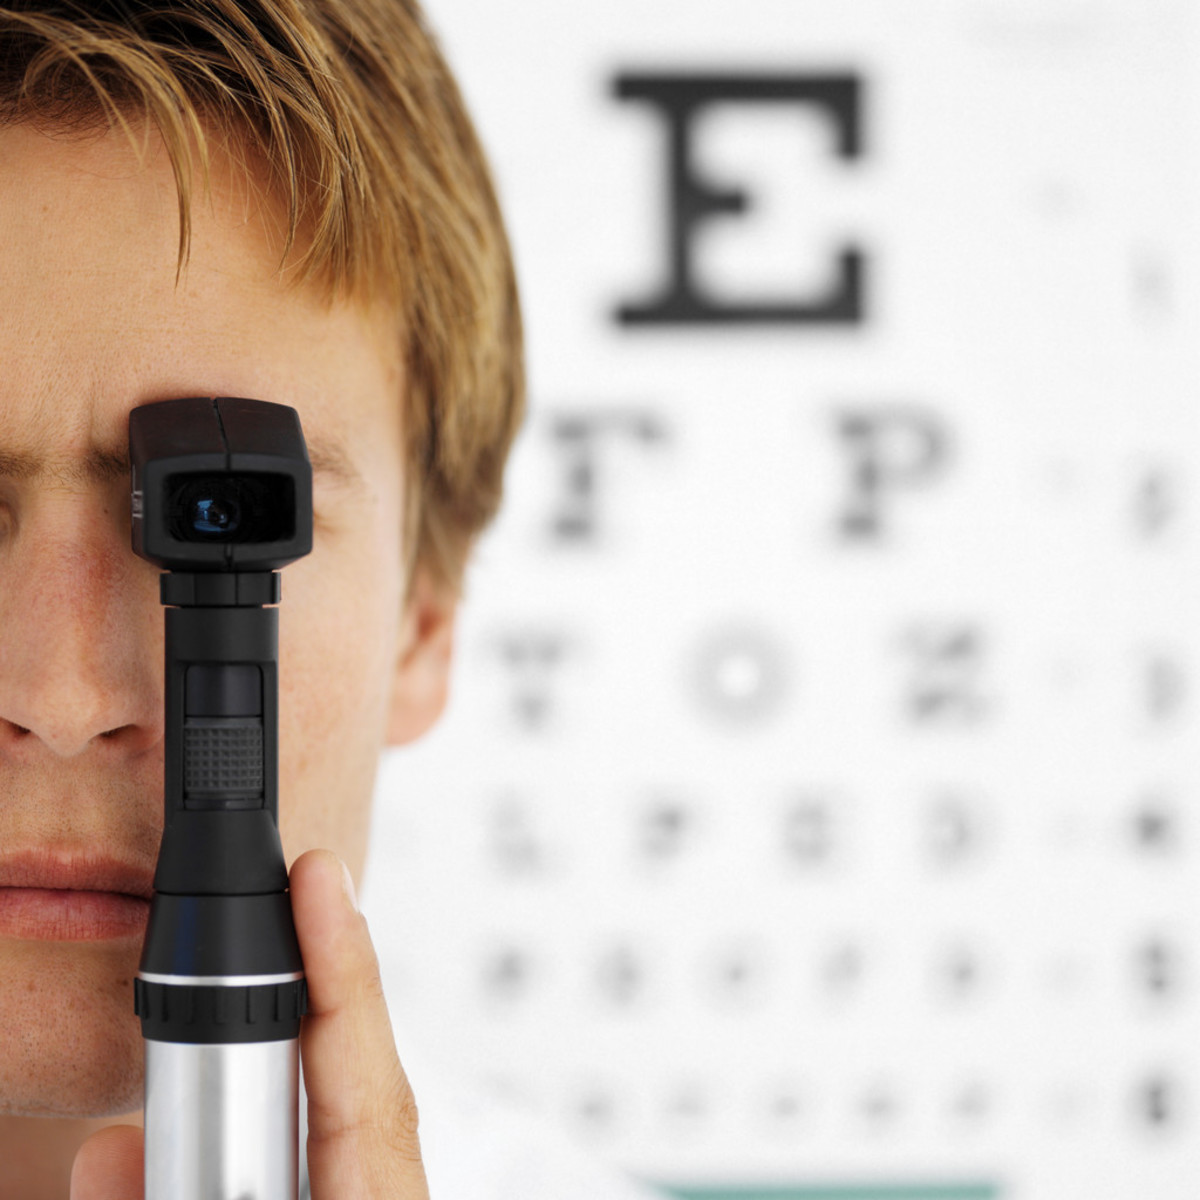 An optometrist uses an ophthalmoscope.